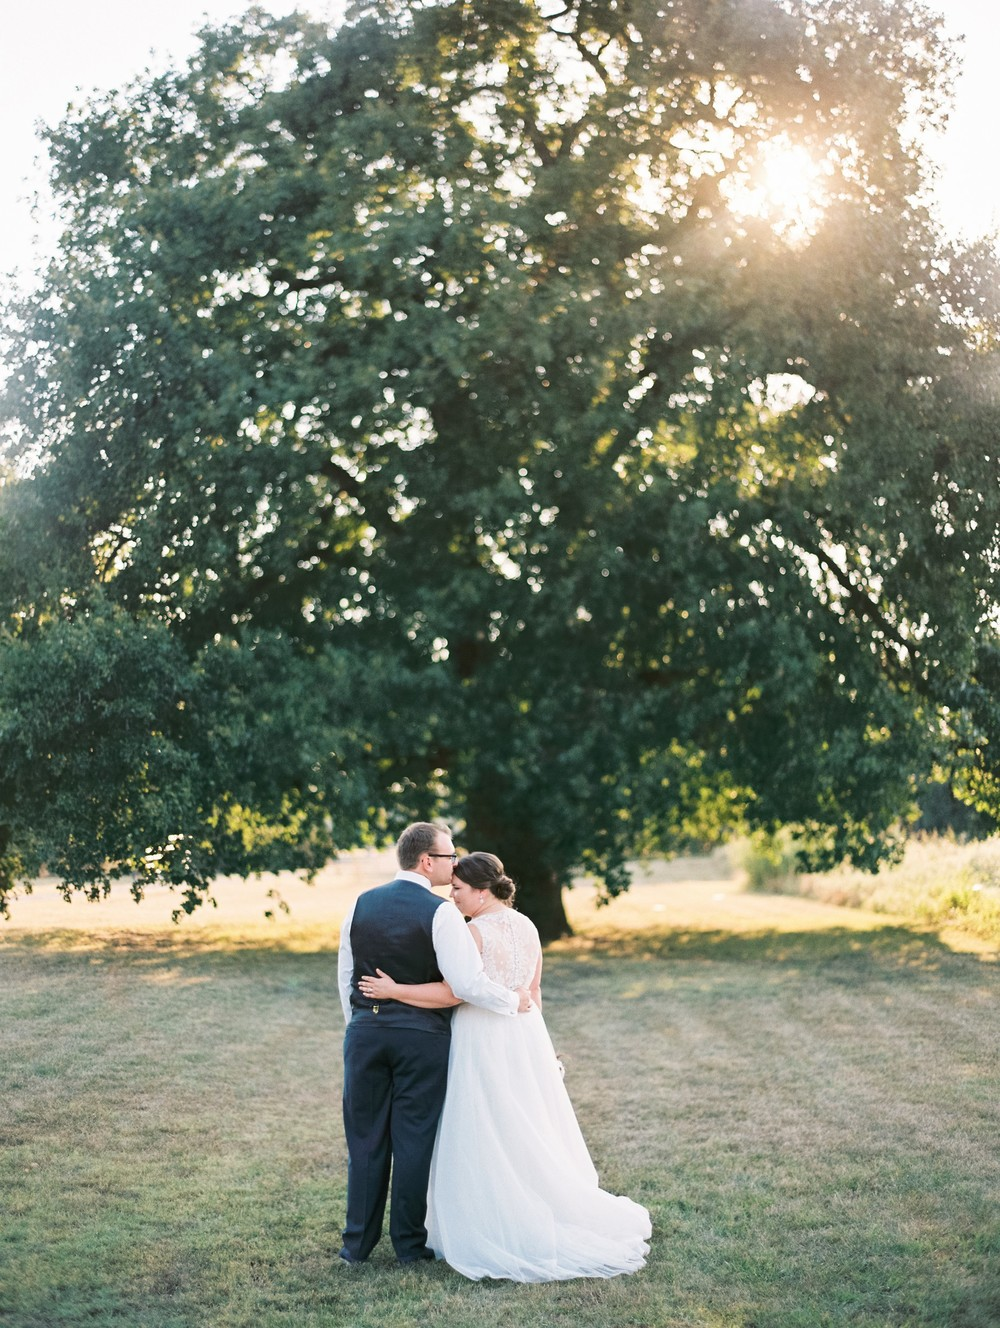 Becca Lea Photography- Dallas Fine Art film wedding photographer